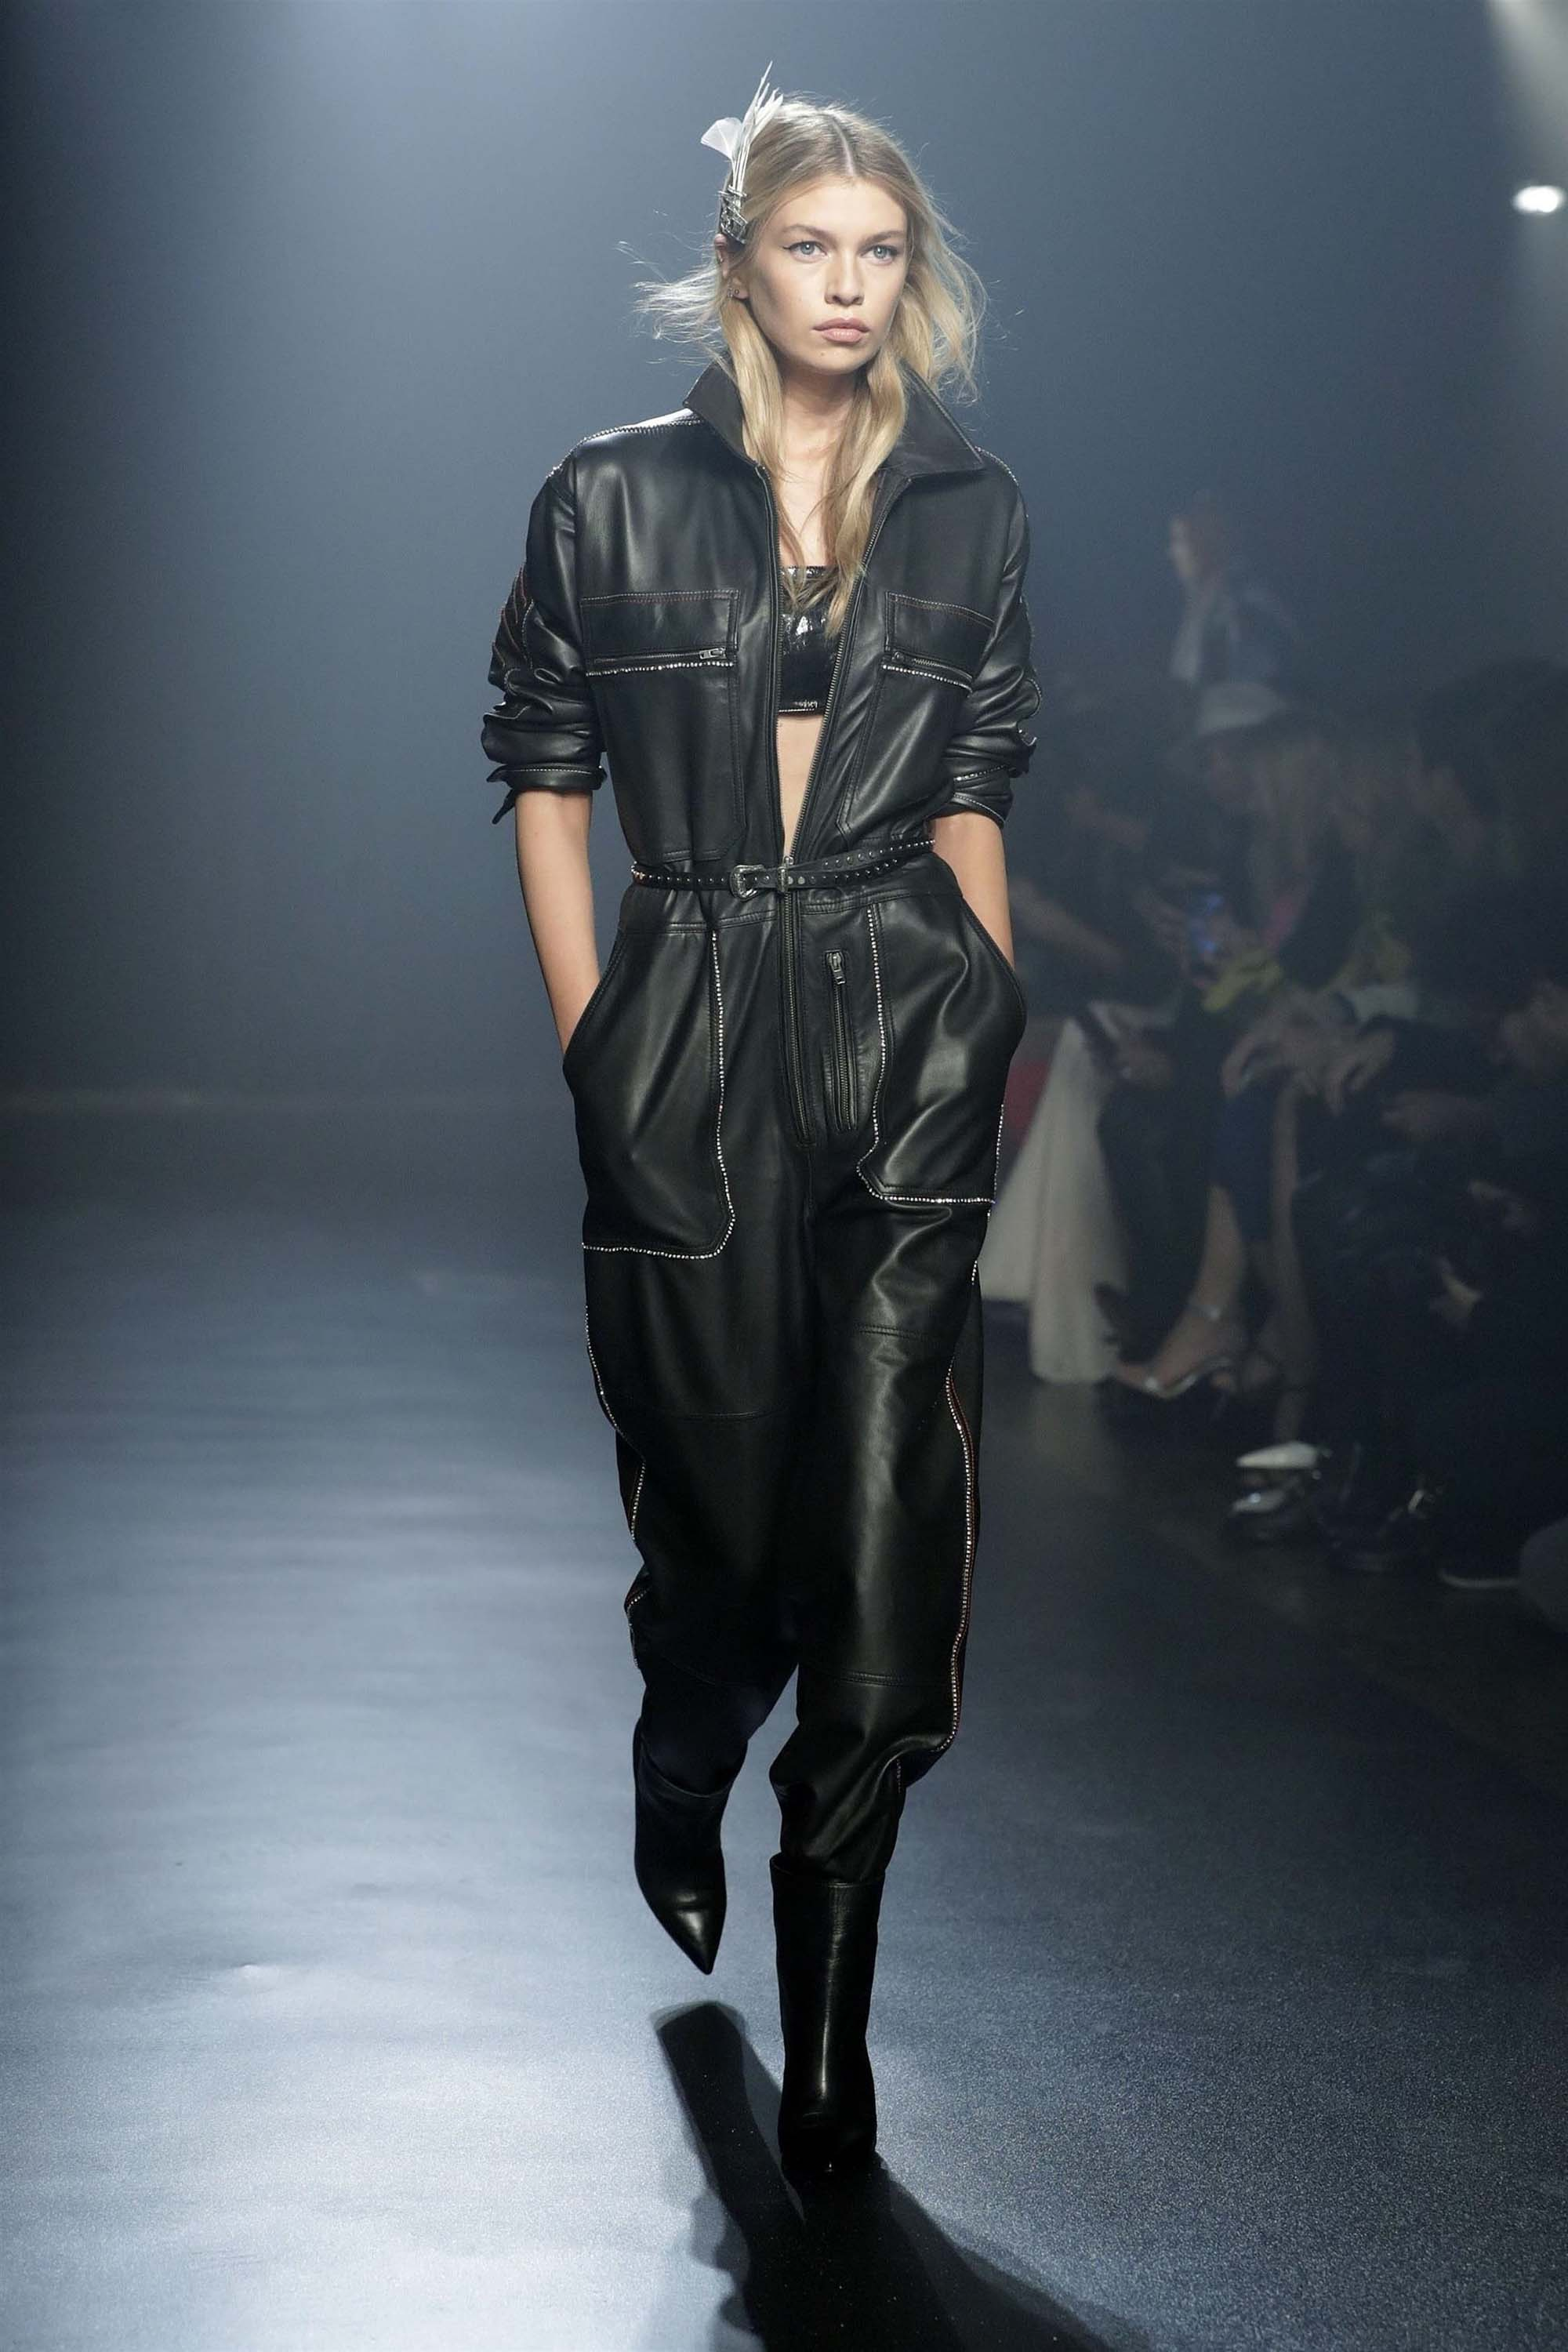 Stella Maxwell attends Walks in the Zadig & Voltaire show